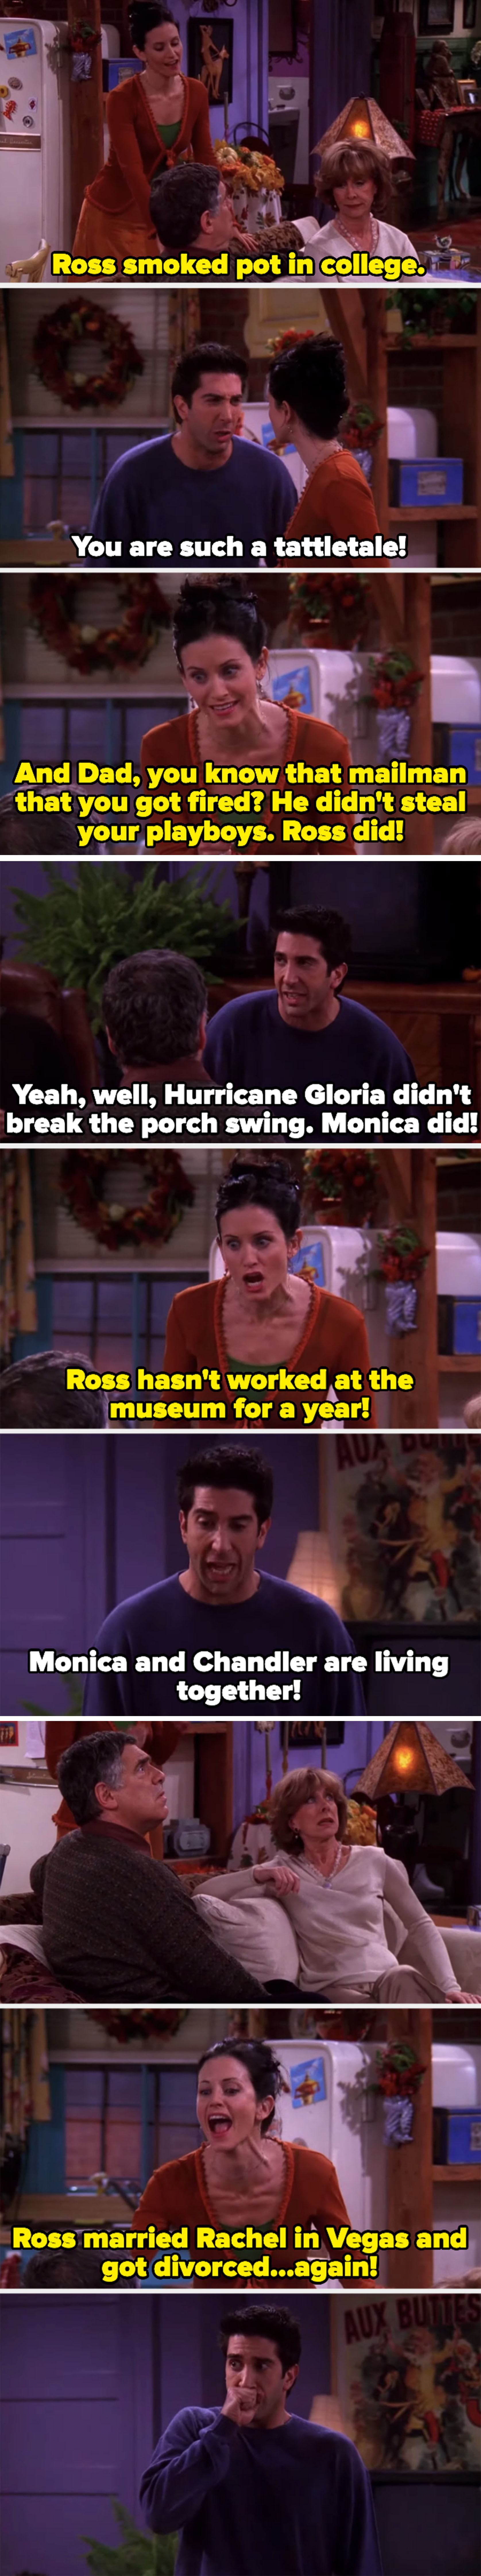 Monica and Ross telling on each other to their parents